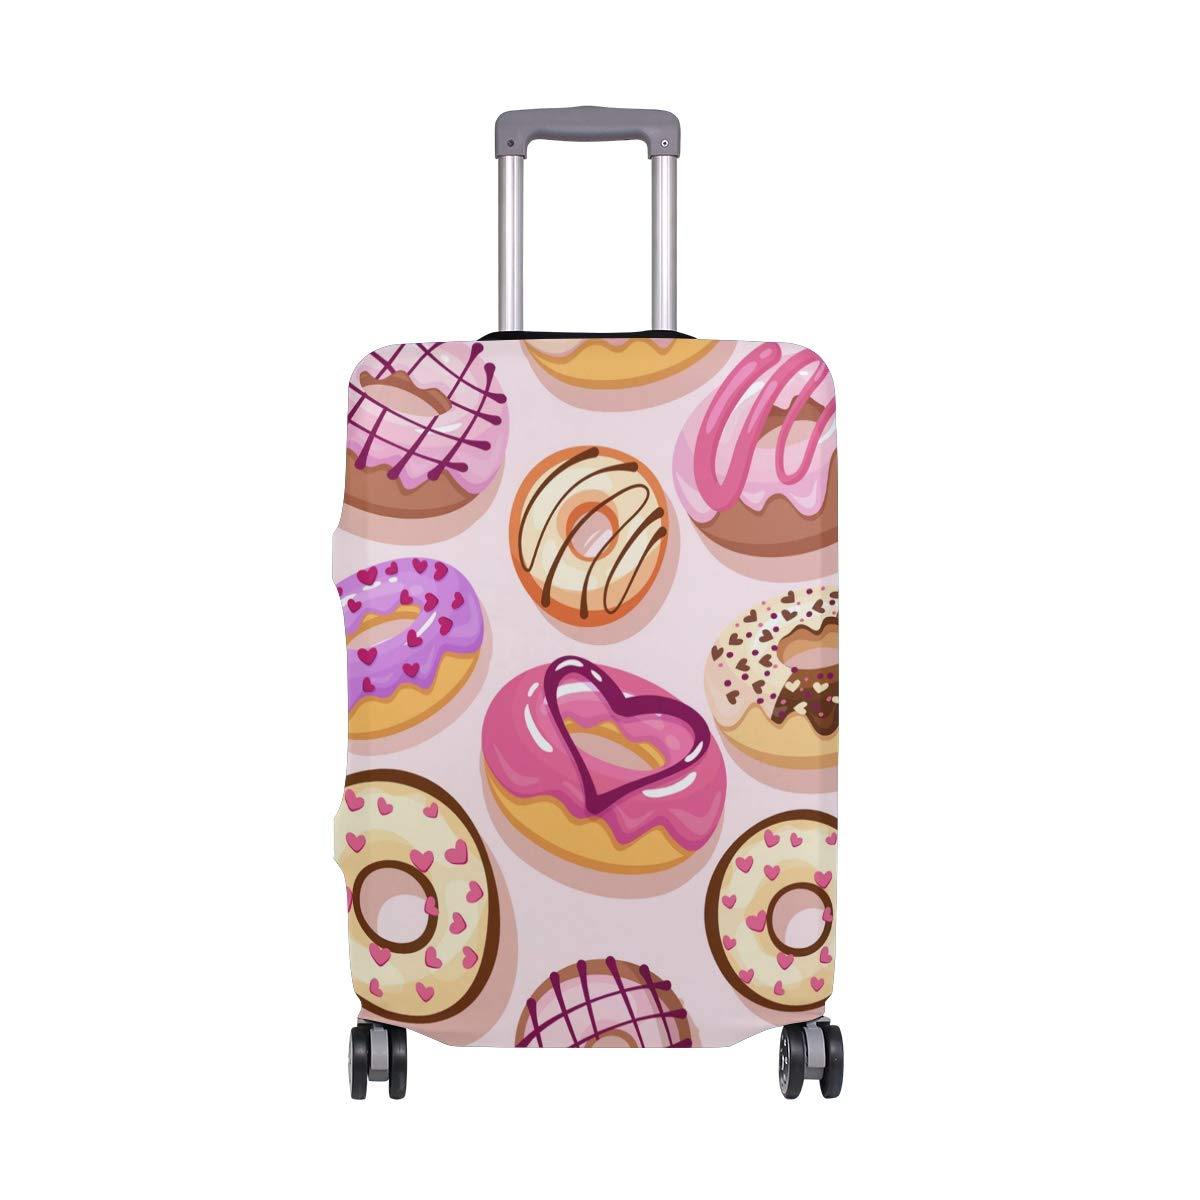 Baggage Covers Yummy Donut Pink Cake Cream Washable Protective Case